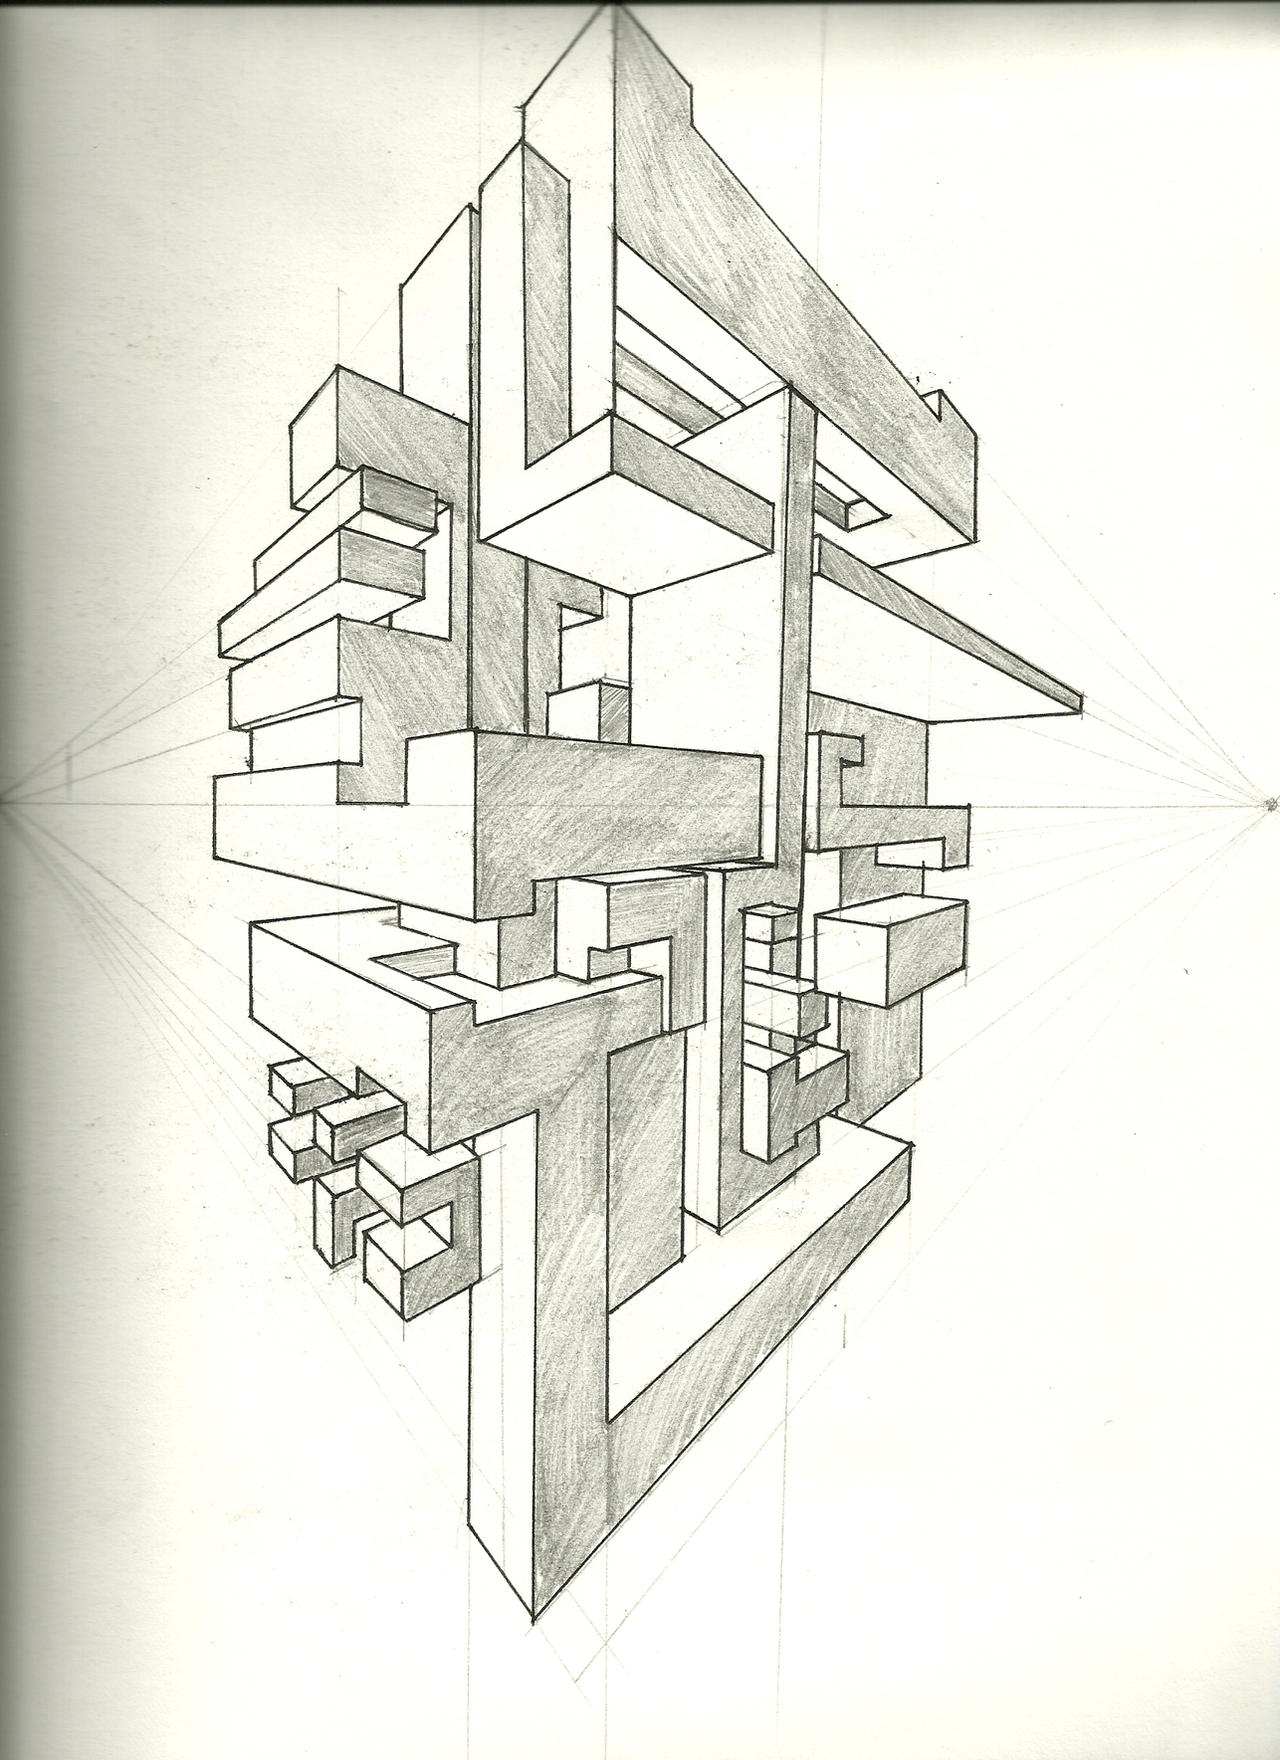 Two point perspective exercise by tower015 on deviantart for Architecture modern house design 2 point perspective view